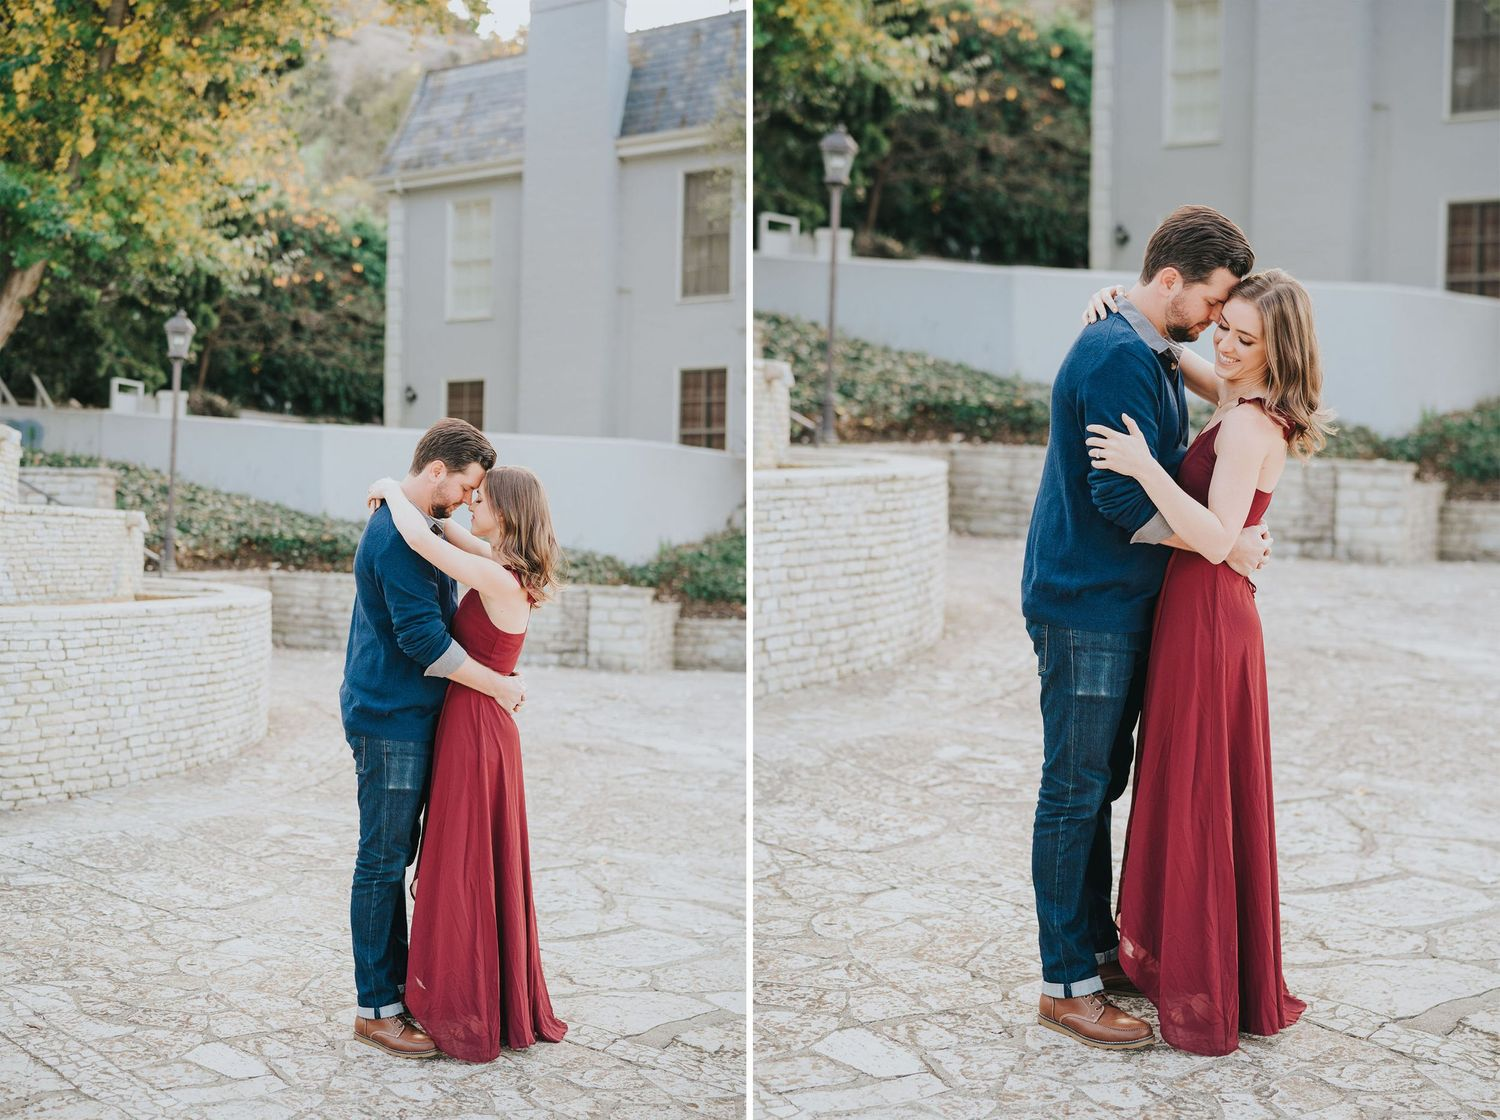 engagement photo near stone fountain